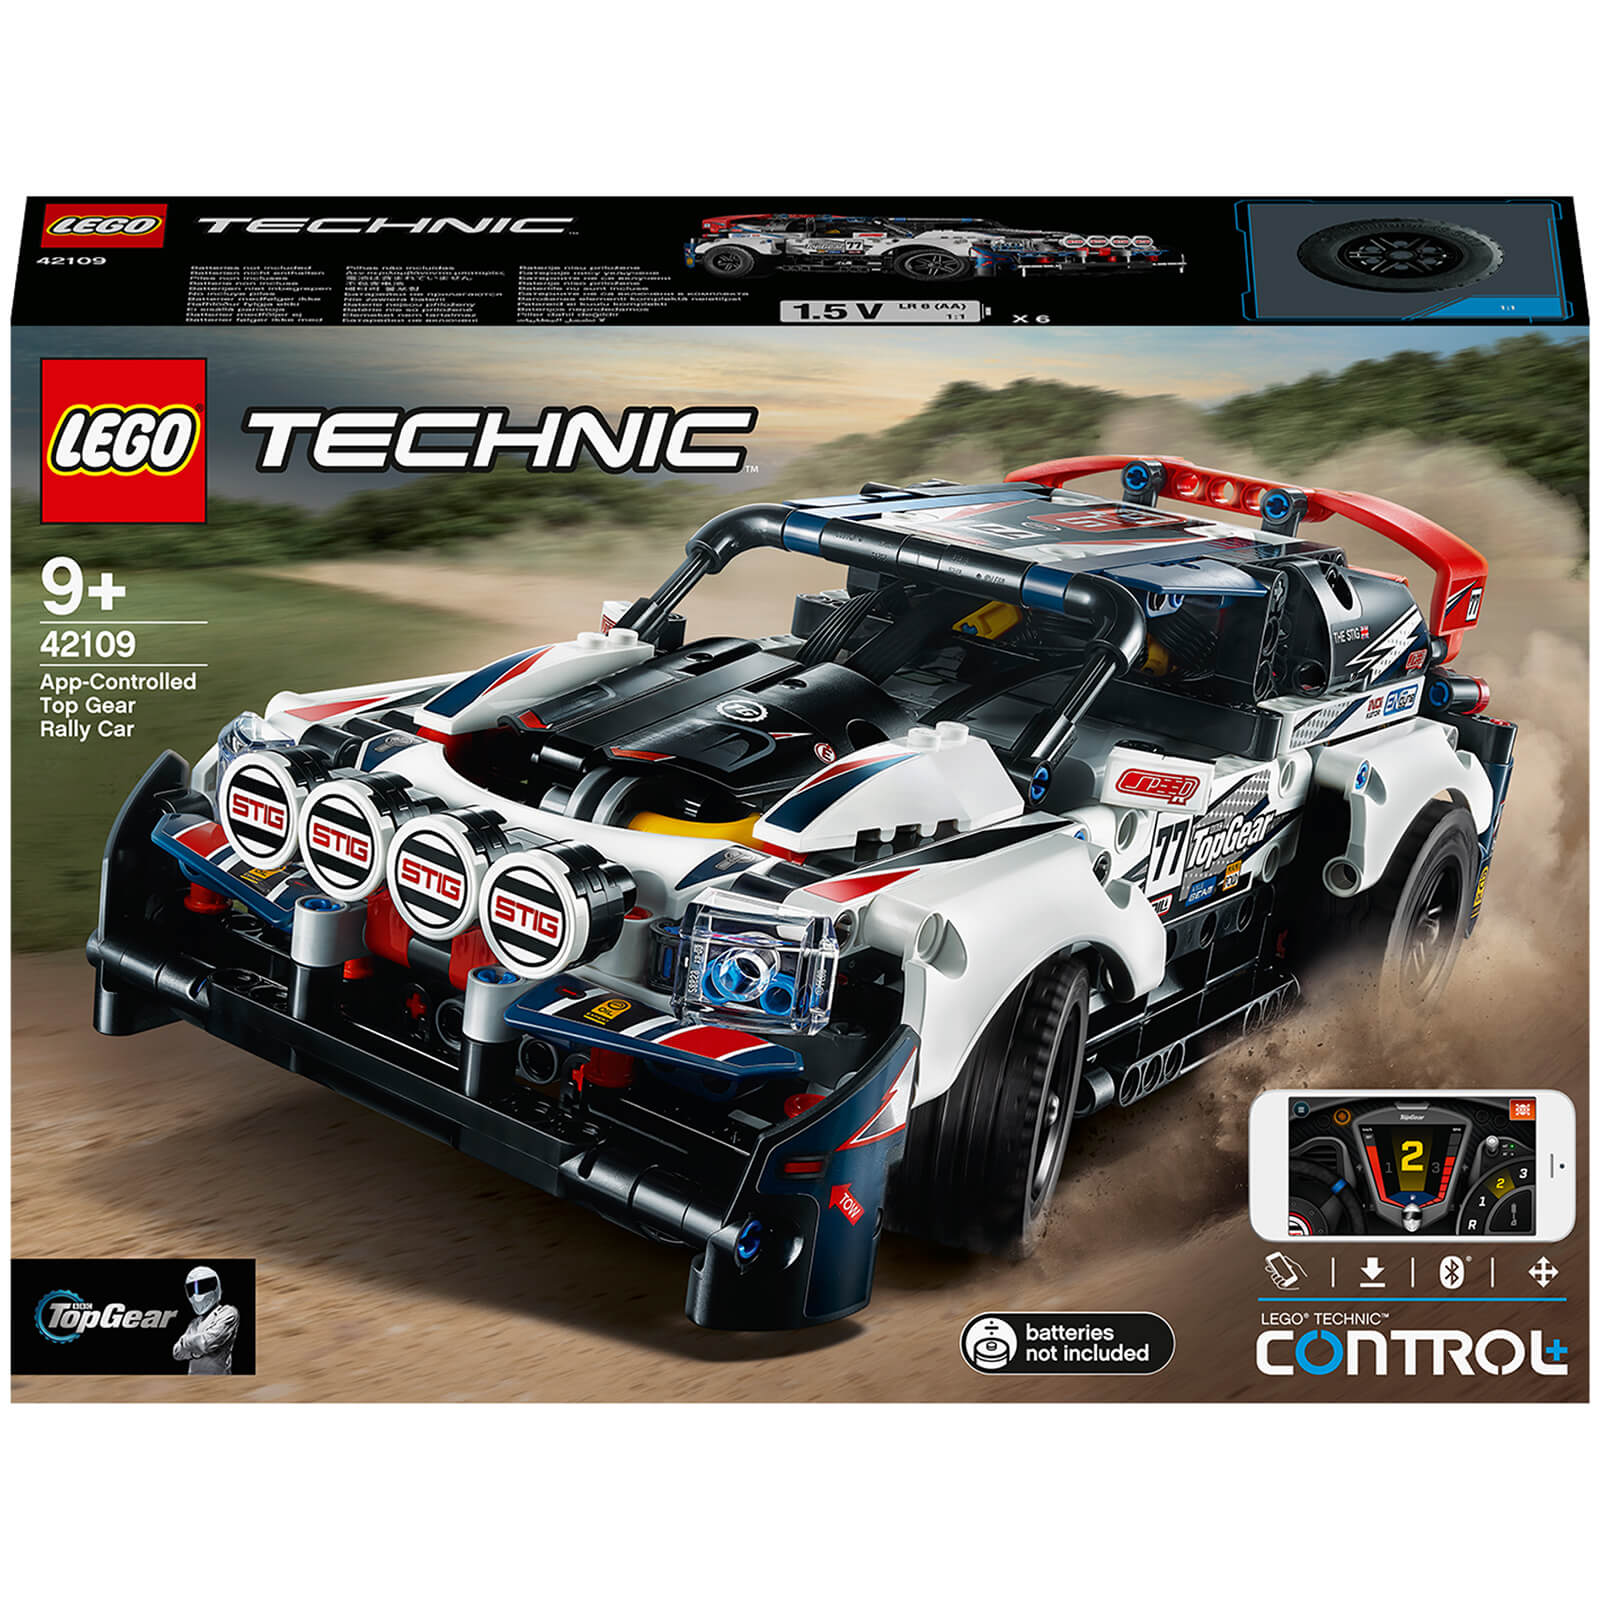 Image of 42109 LEGO® TECHNIC Top-Gear Ralleycar with app control